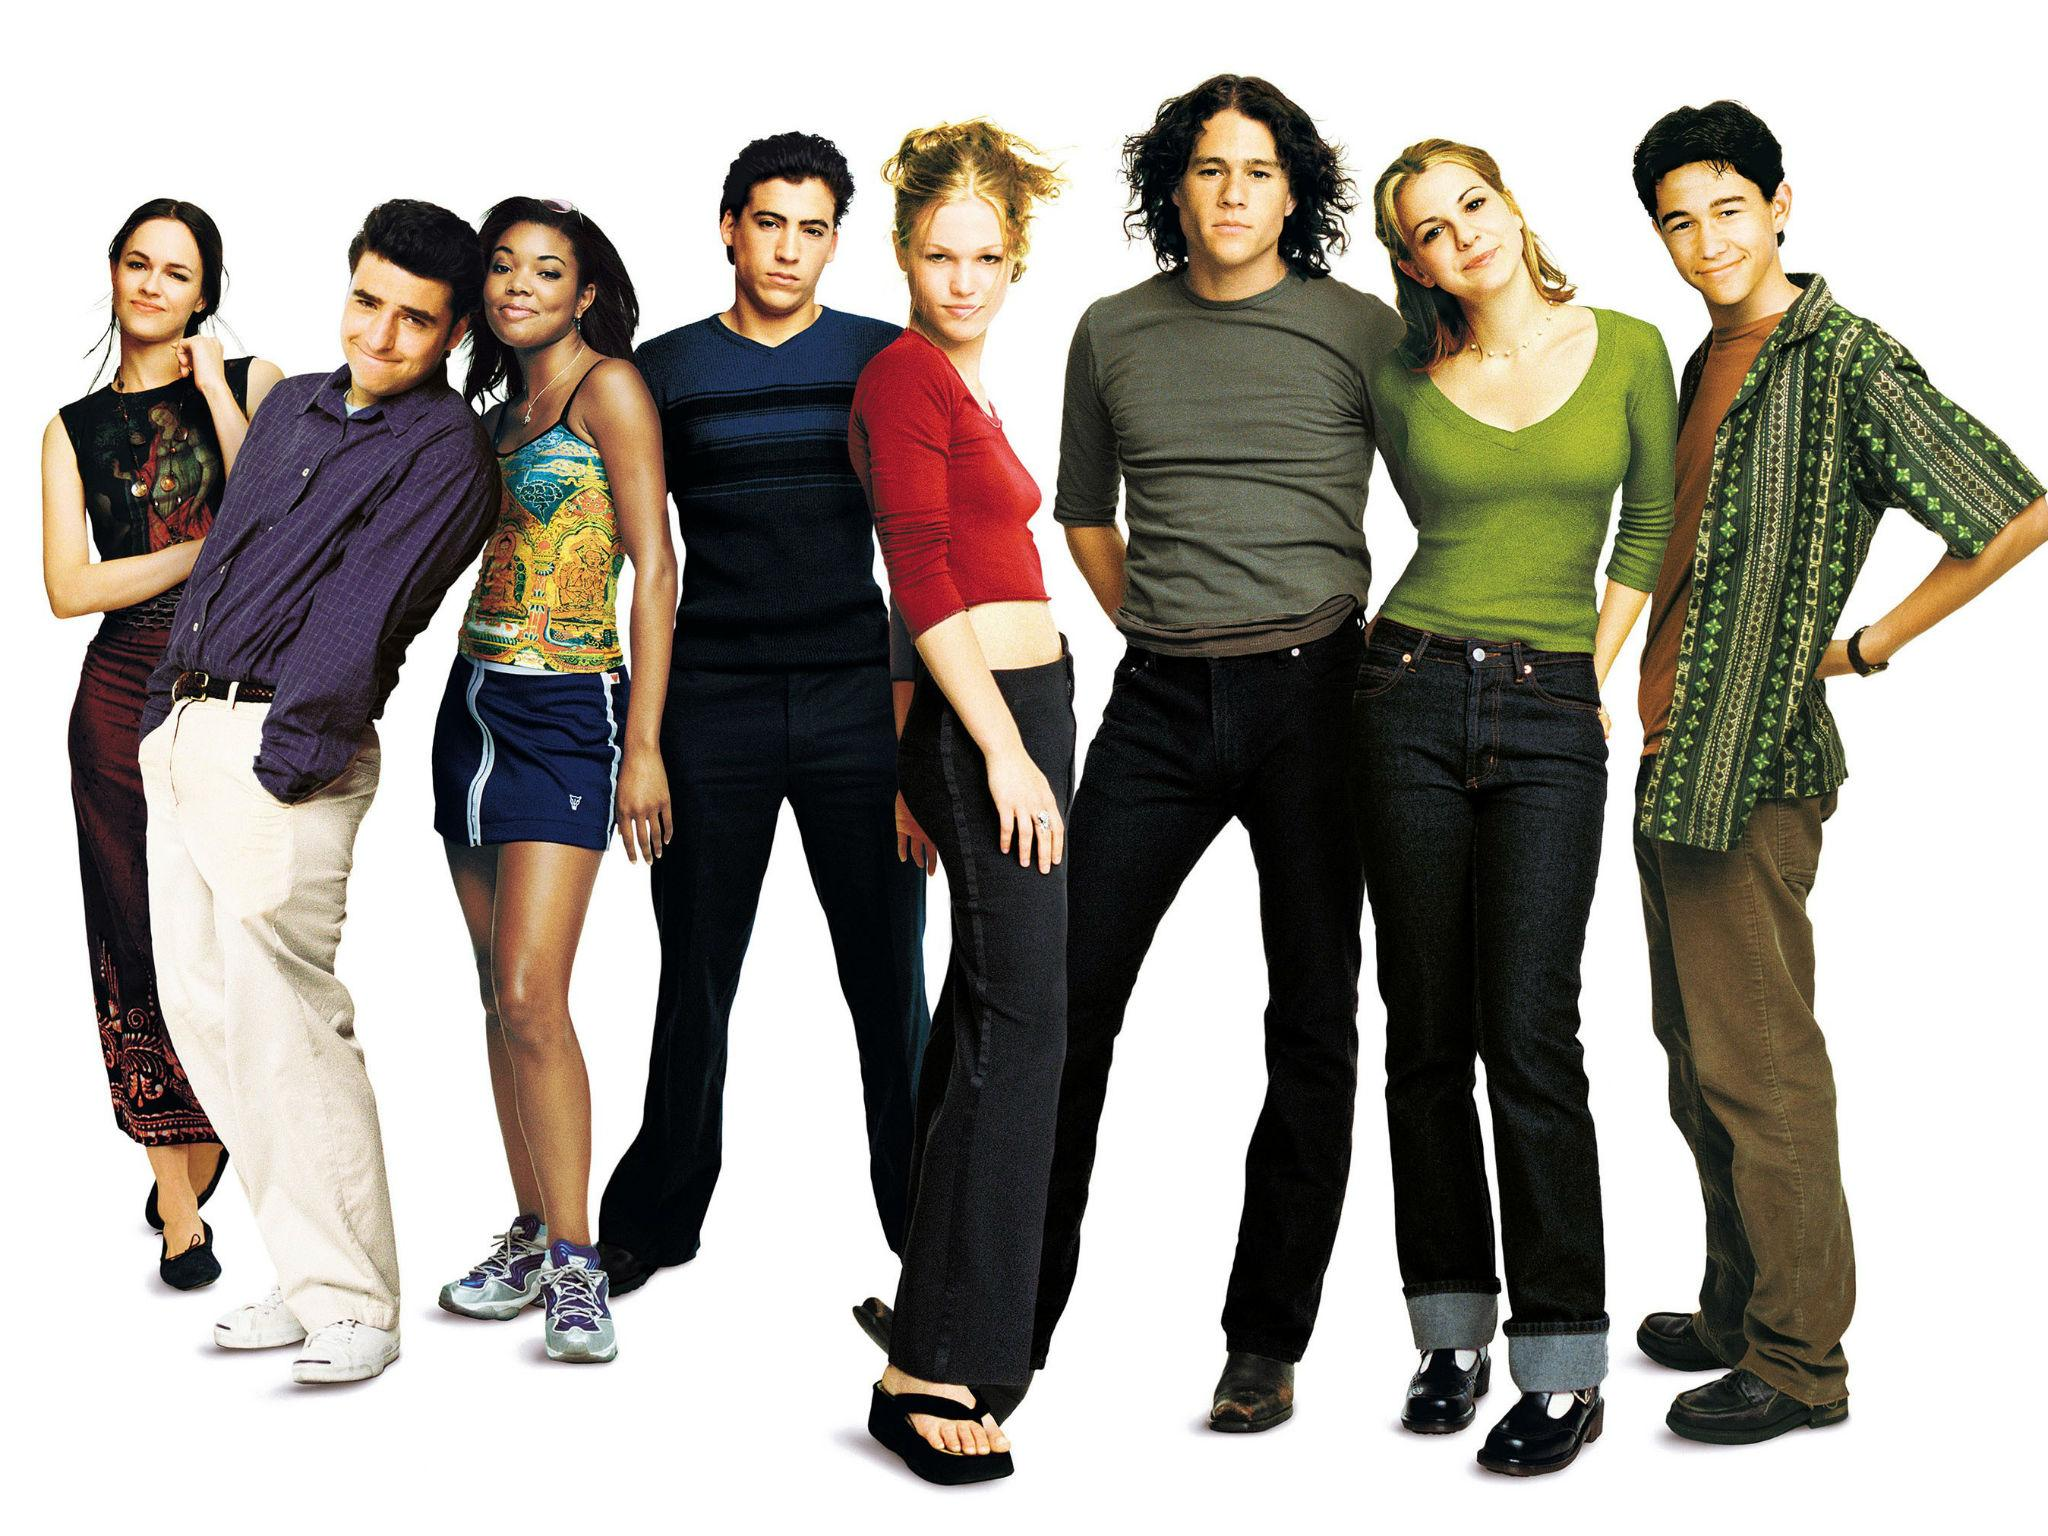 ten things i hate about you essay is 10 things i hate about you simply the taming of the shrew relocated to high school gil junger's 10 things i hate about you is undoubtedly more complicated than a relocation of shakespeare's the taming of the shrew into high school the transformation of shakespearean comedy into the 'teen' movie genre and the integration of.